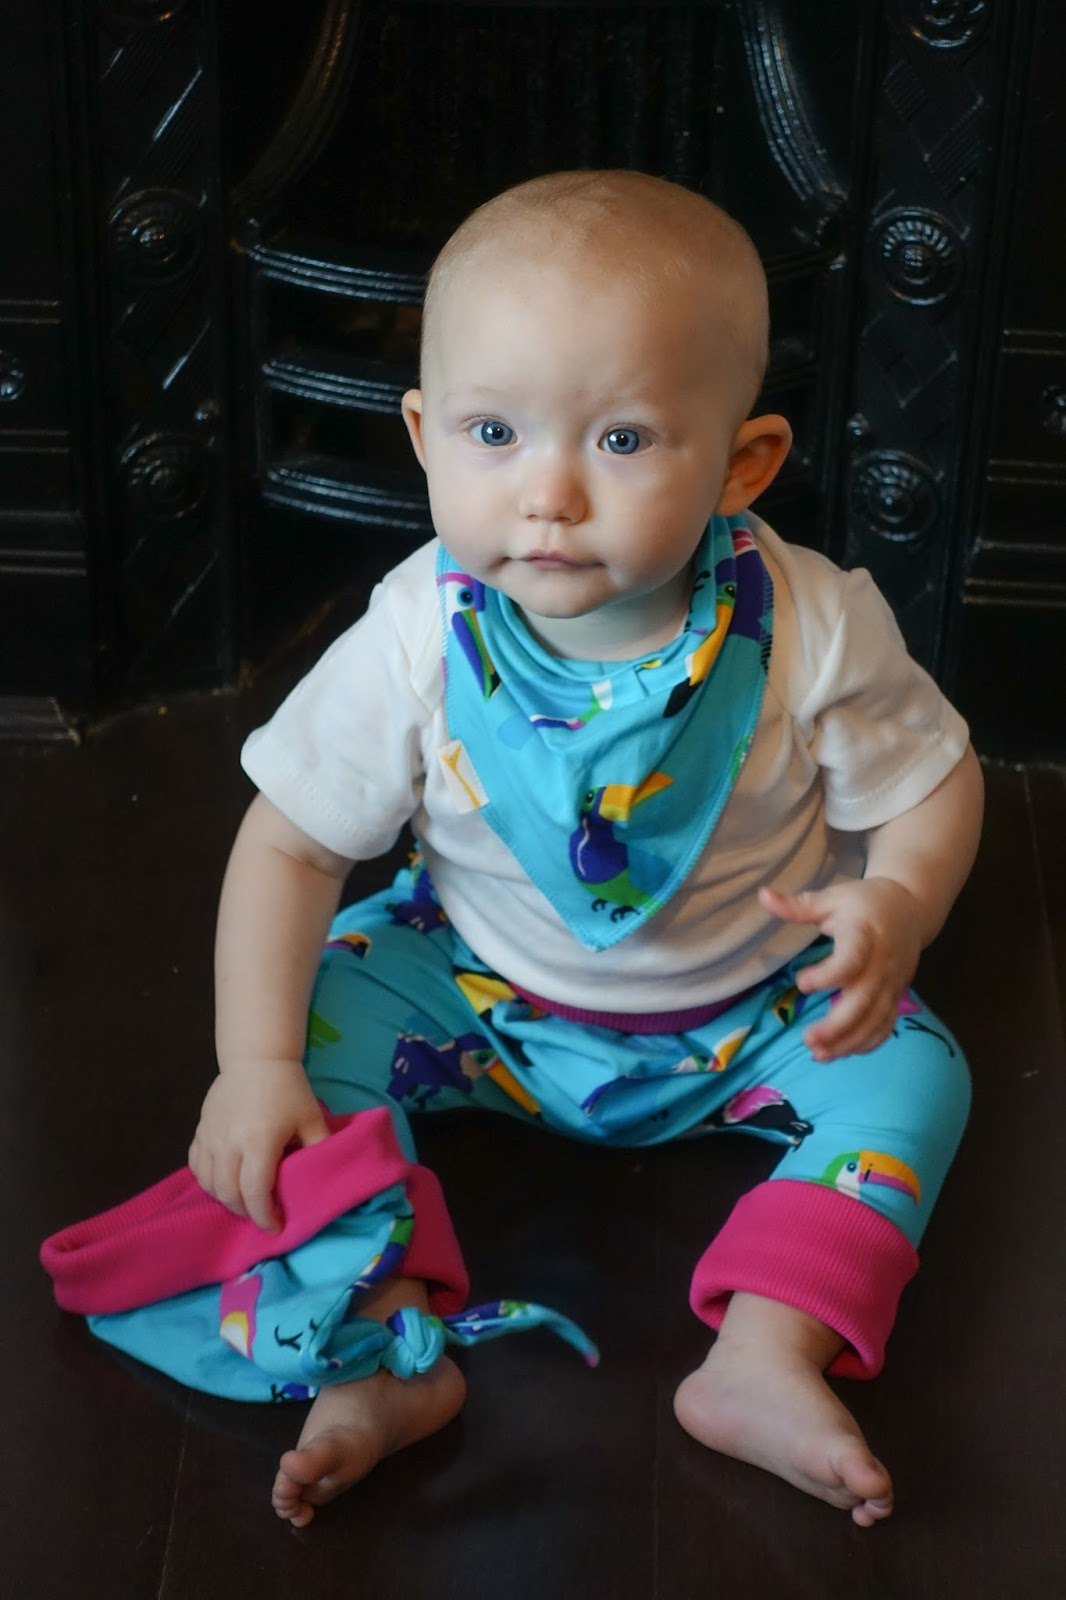 A baby wearing Funky Giraffe Funky Toucan trousers and bib and holding the hat